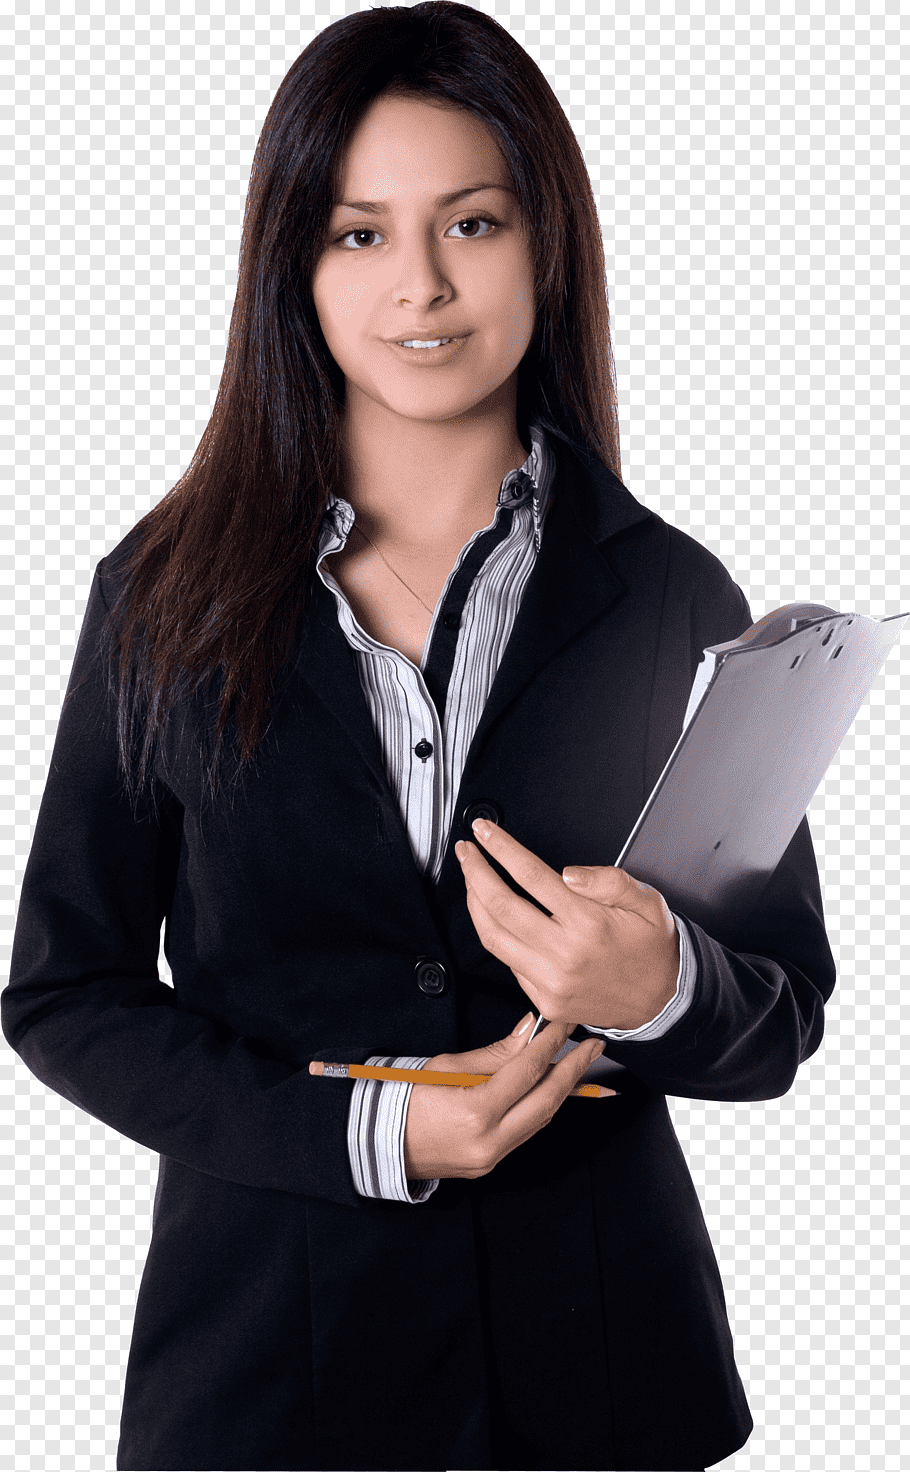 Business Woman Girl, woman standing wearing black cardigan.